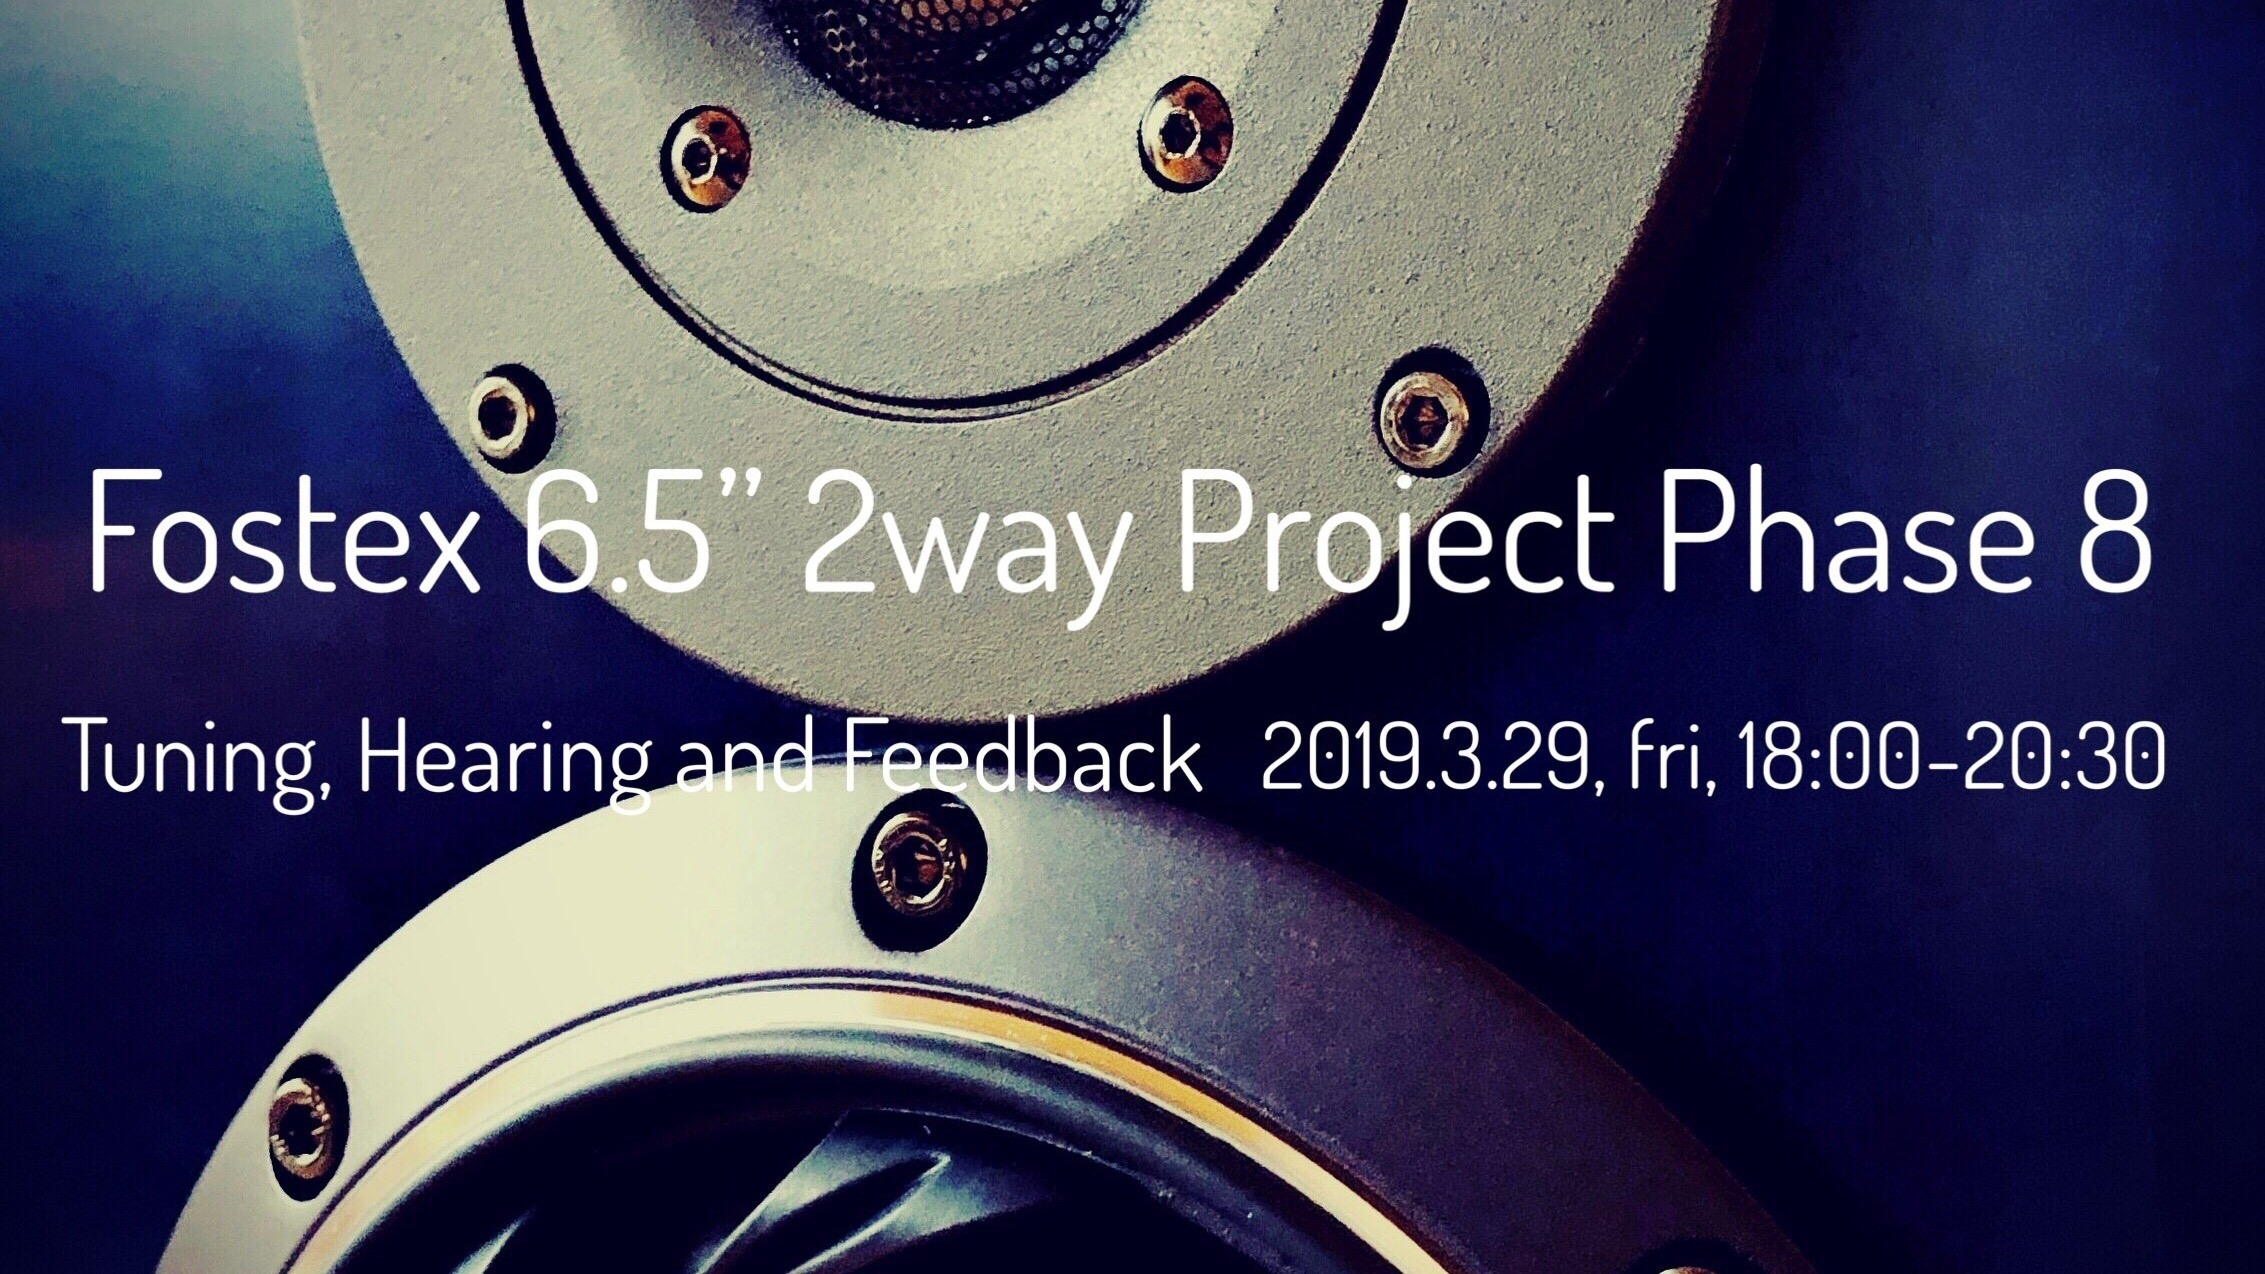 Fostex 6.5″ 2way Project Phase 8